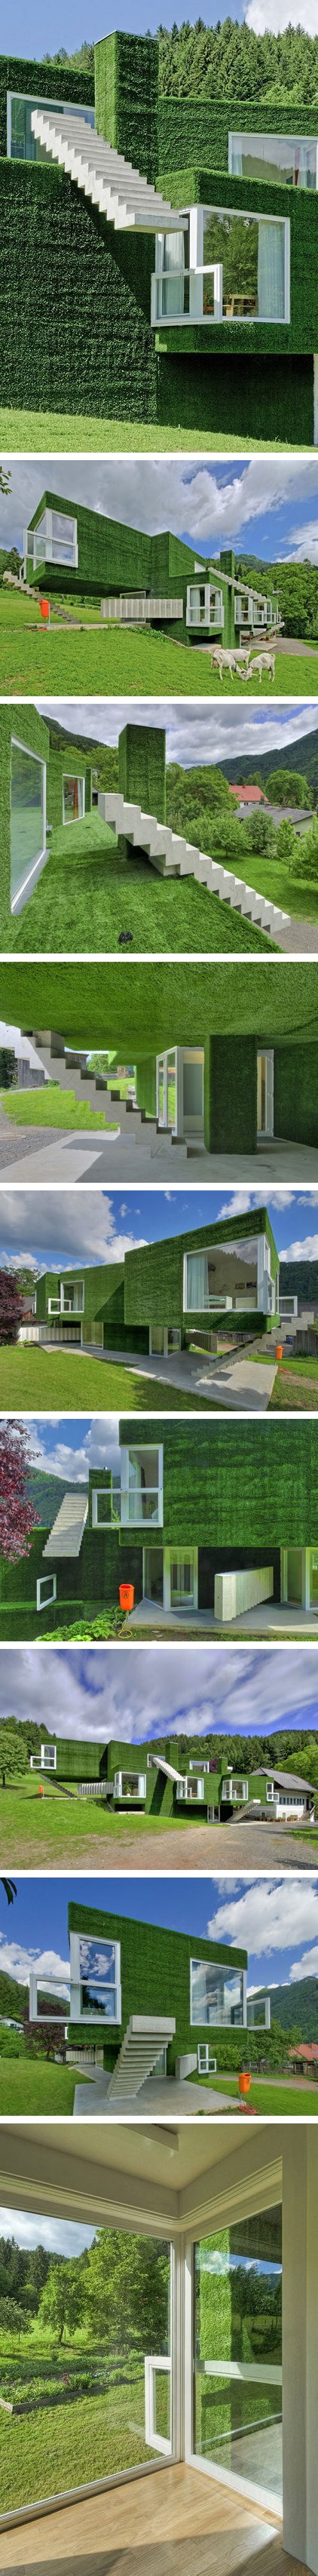 1000+ images about Architecture - green on Pinterest